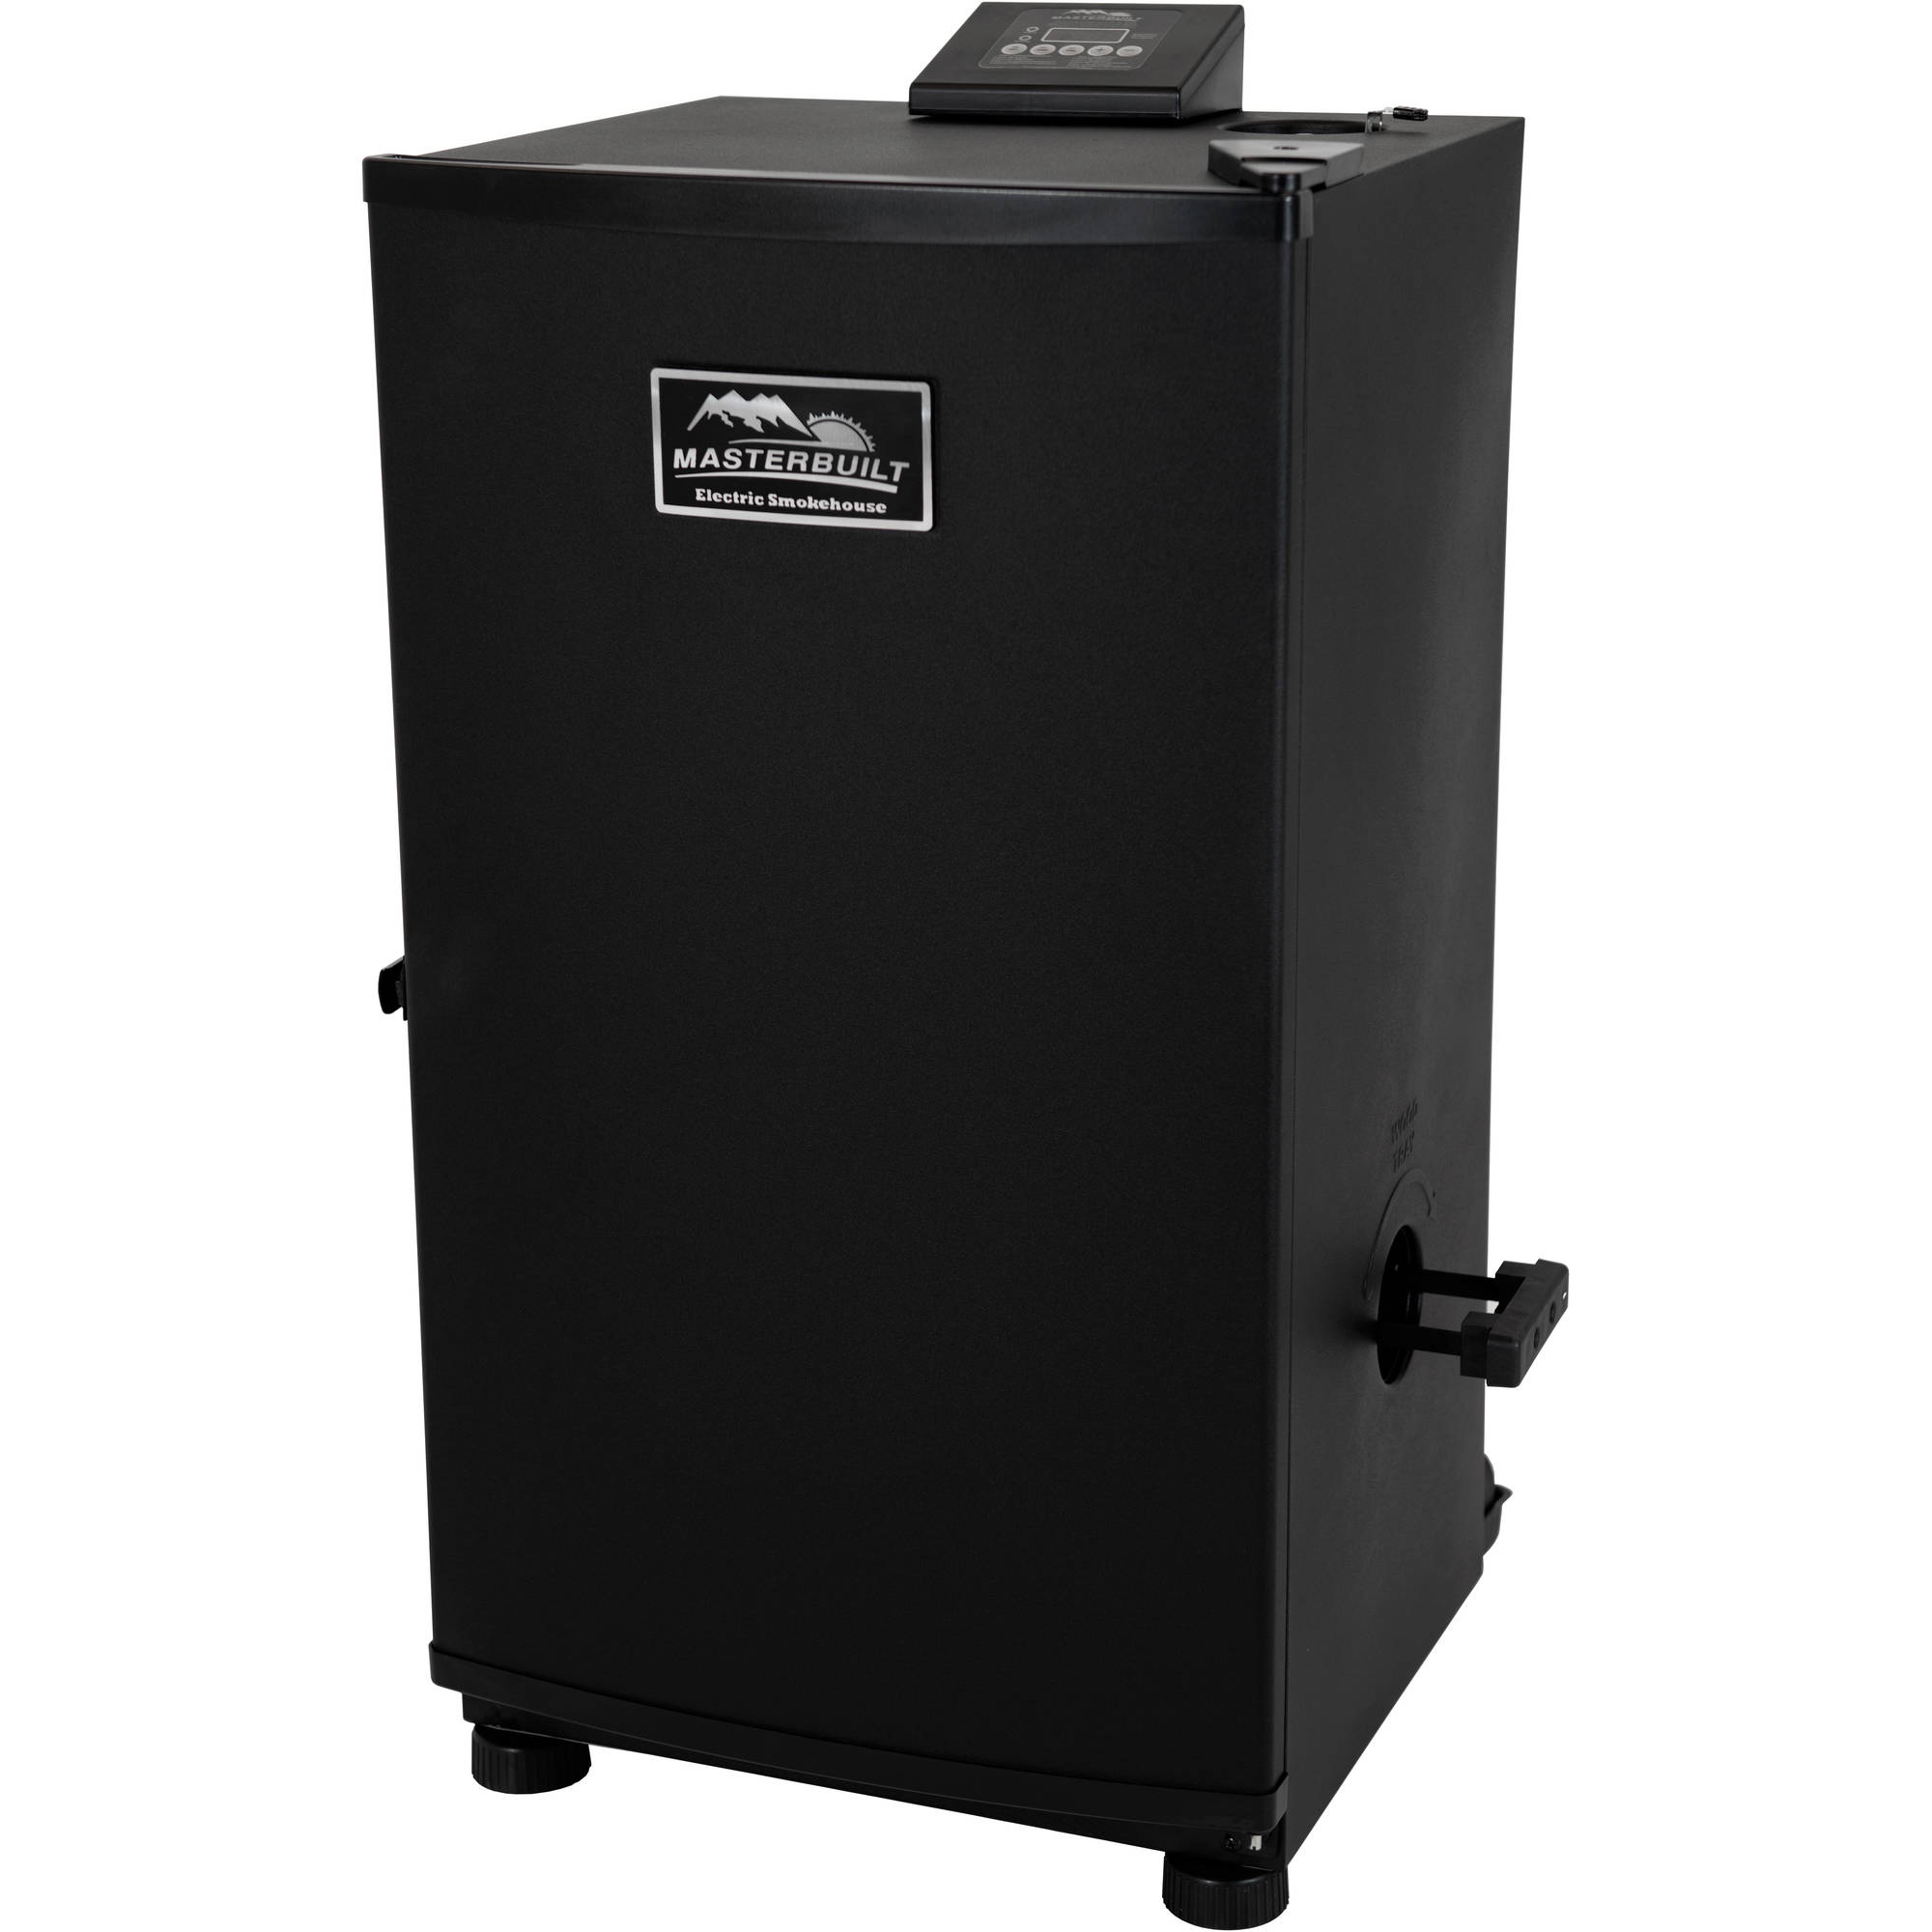 Master Built Digital Electric Smoker